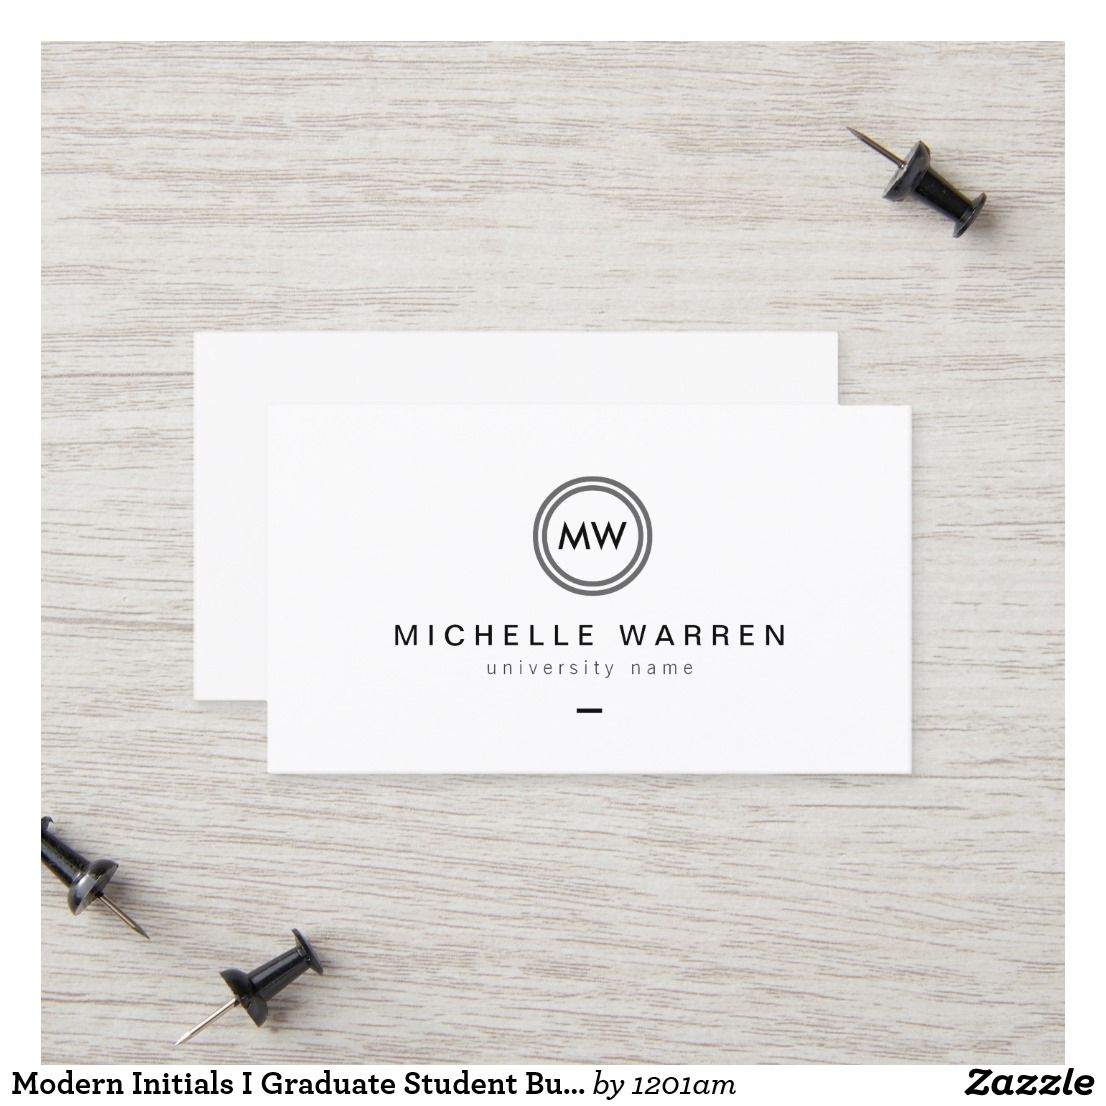 Modern Initials I Graduate Student Business Card Zazzle Com Student Business Cards Printing Business Cards Examples Of Business Cards